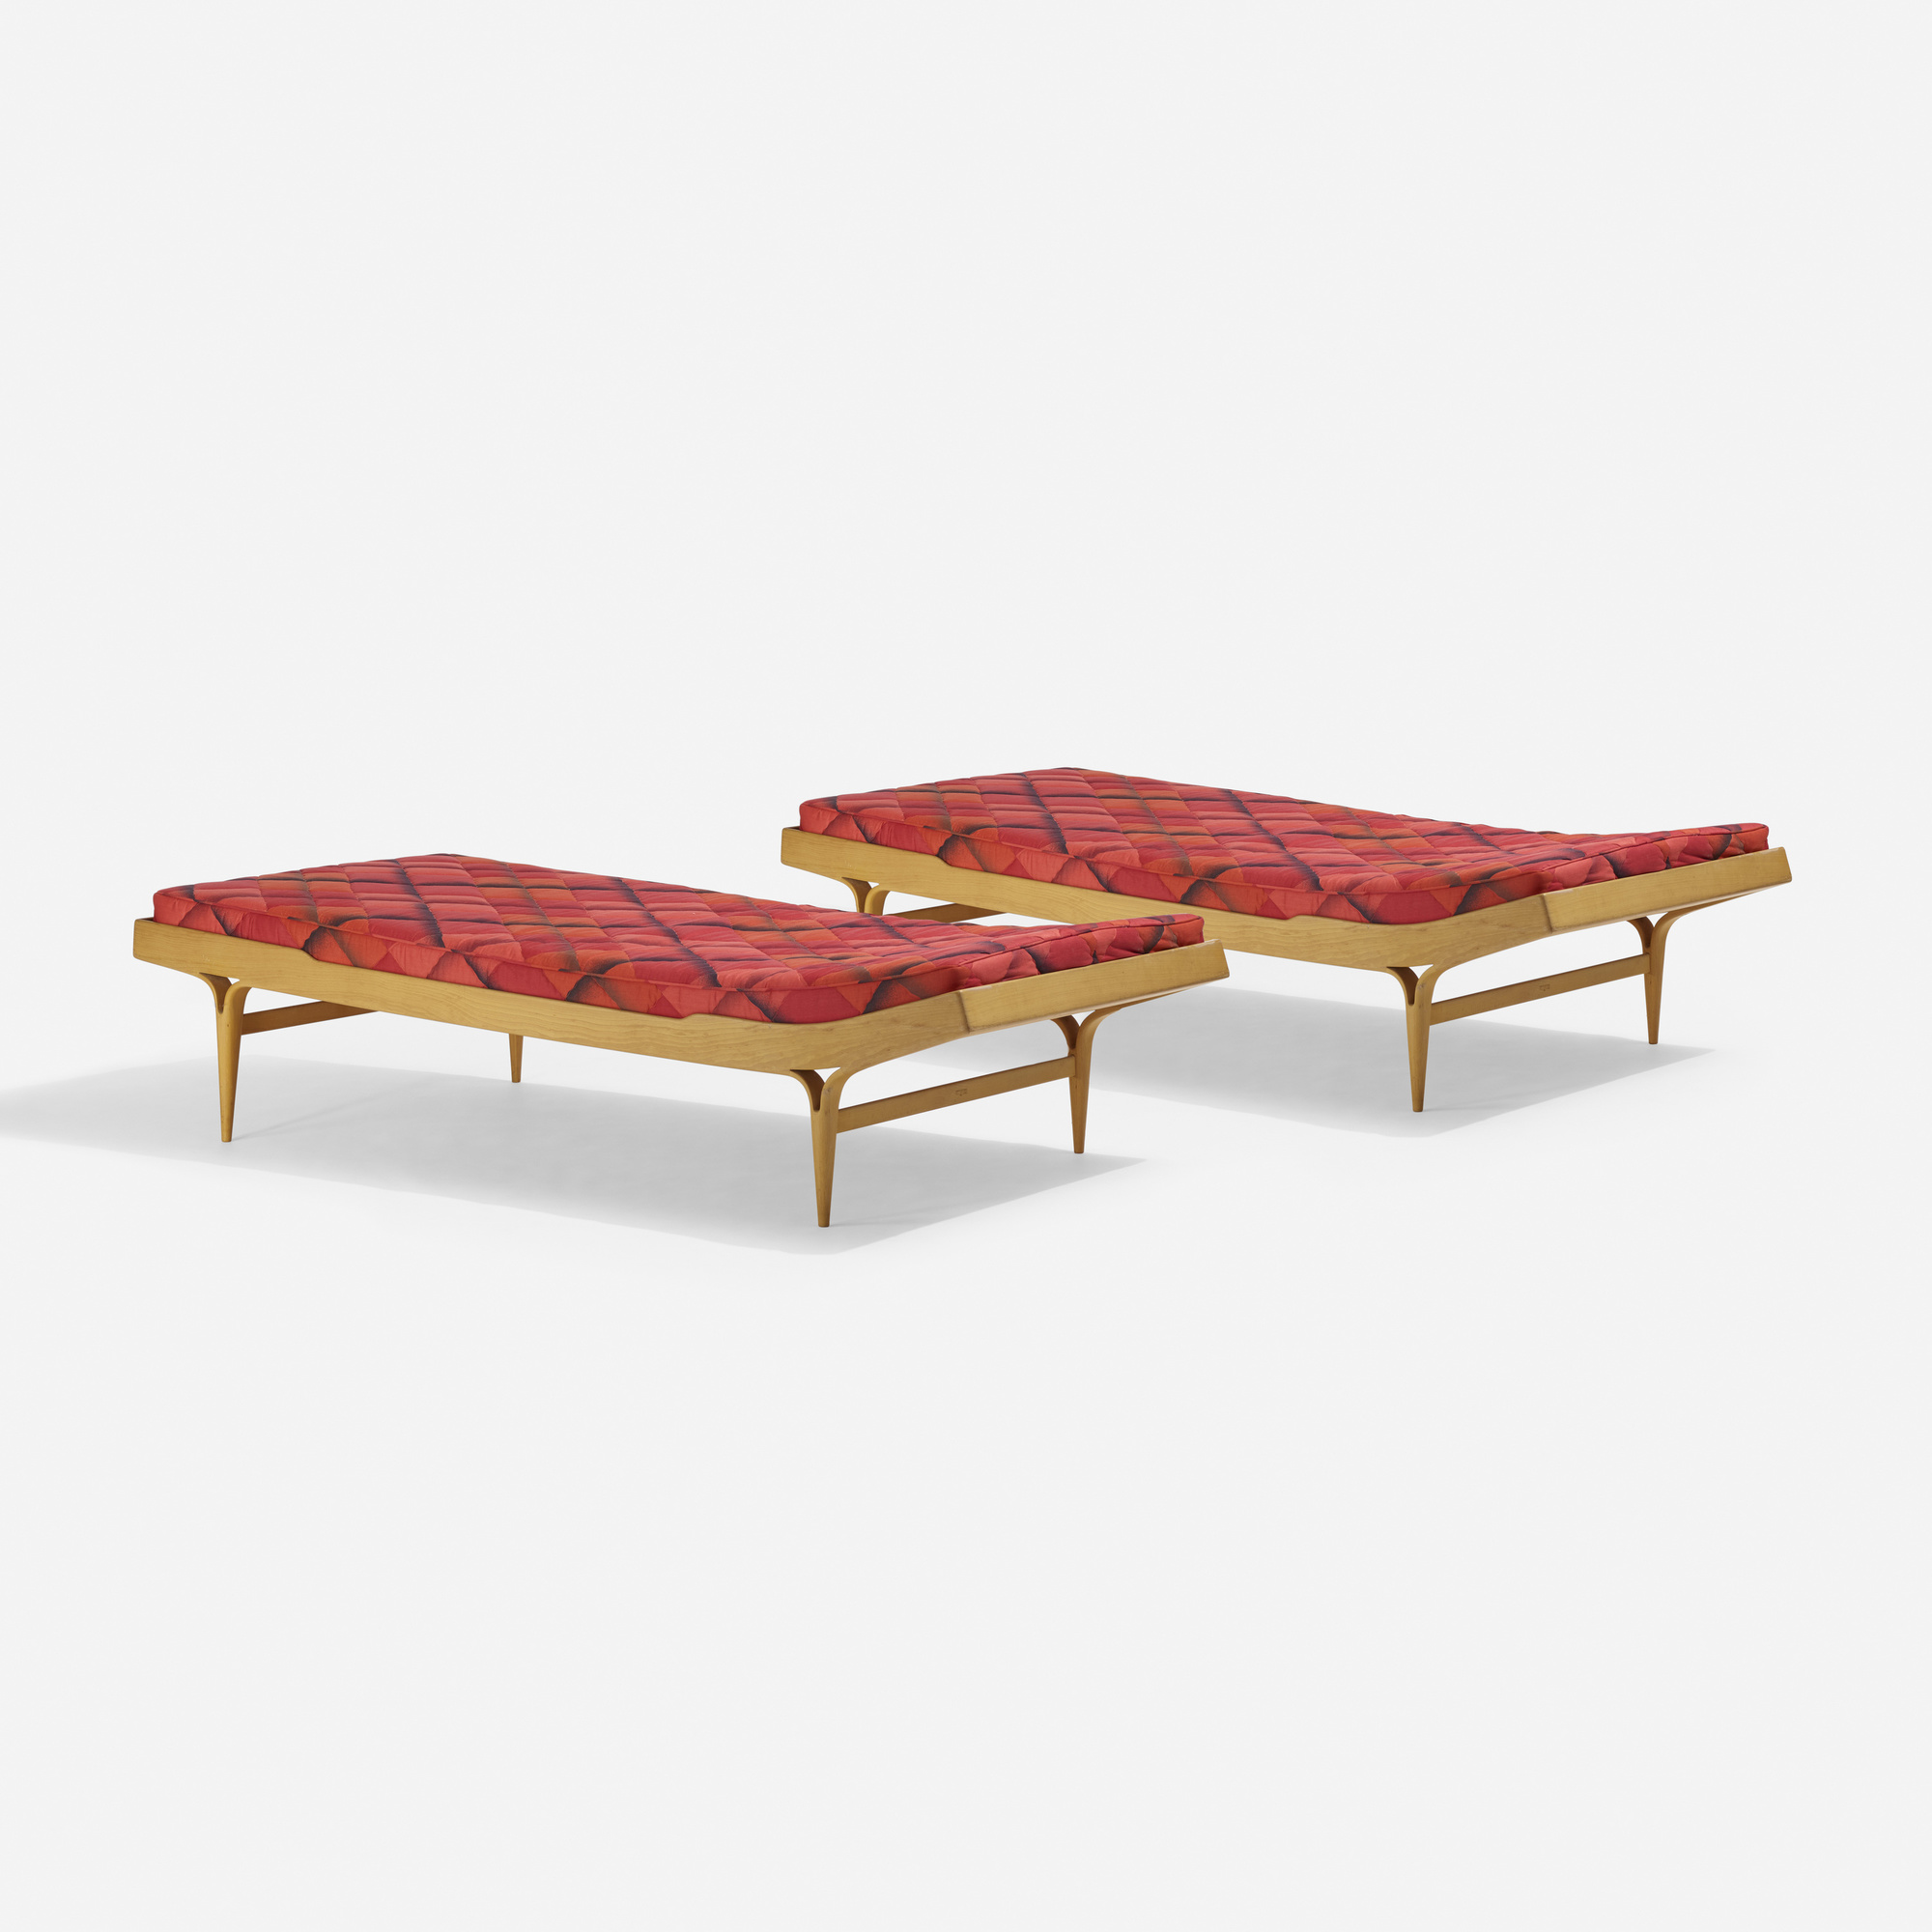 331: Bruno Mathsson / daybeds, pair (1 of 3)